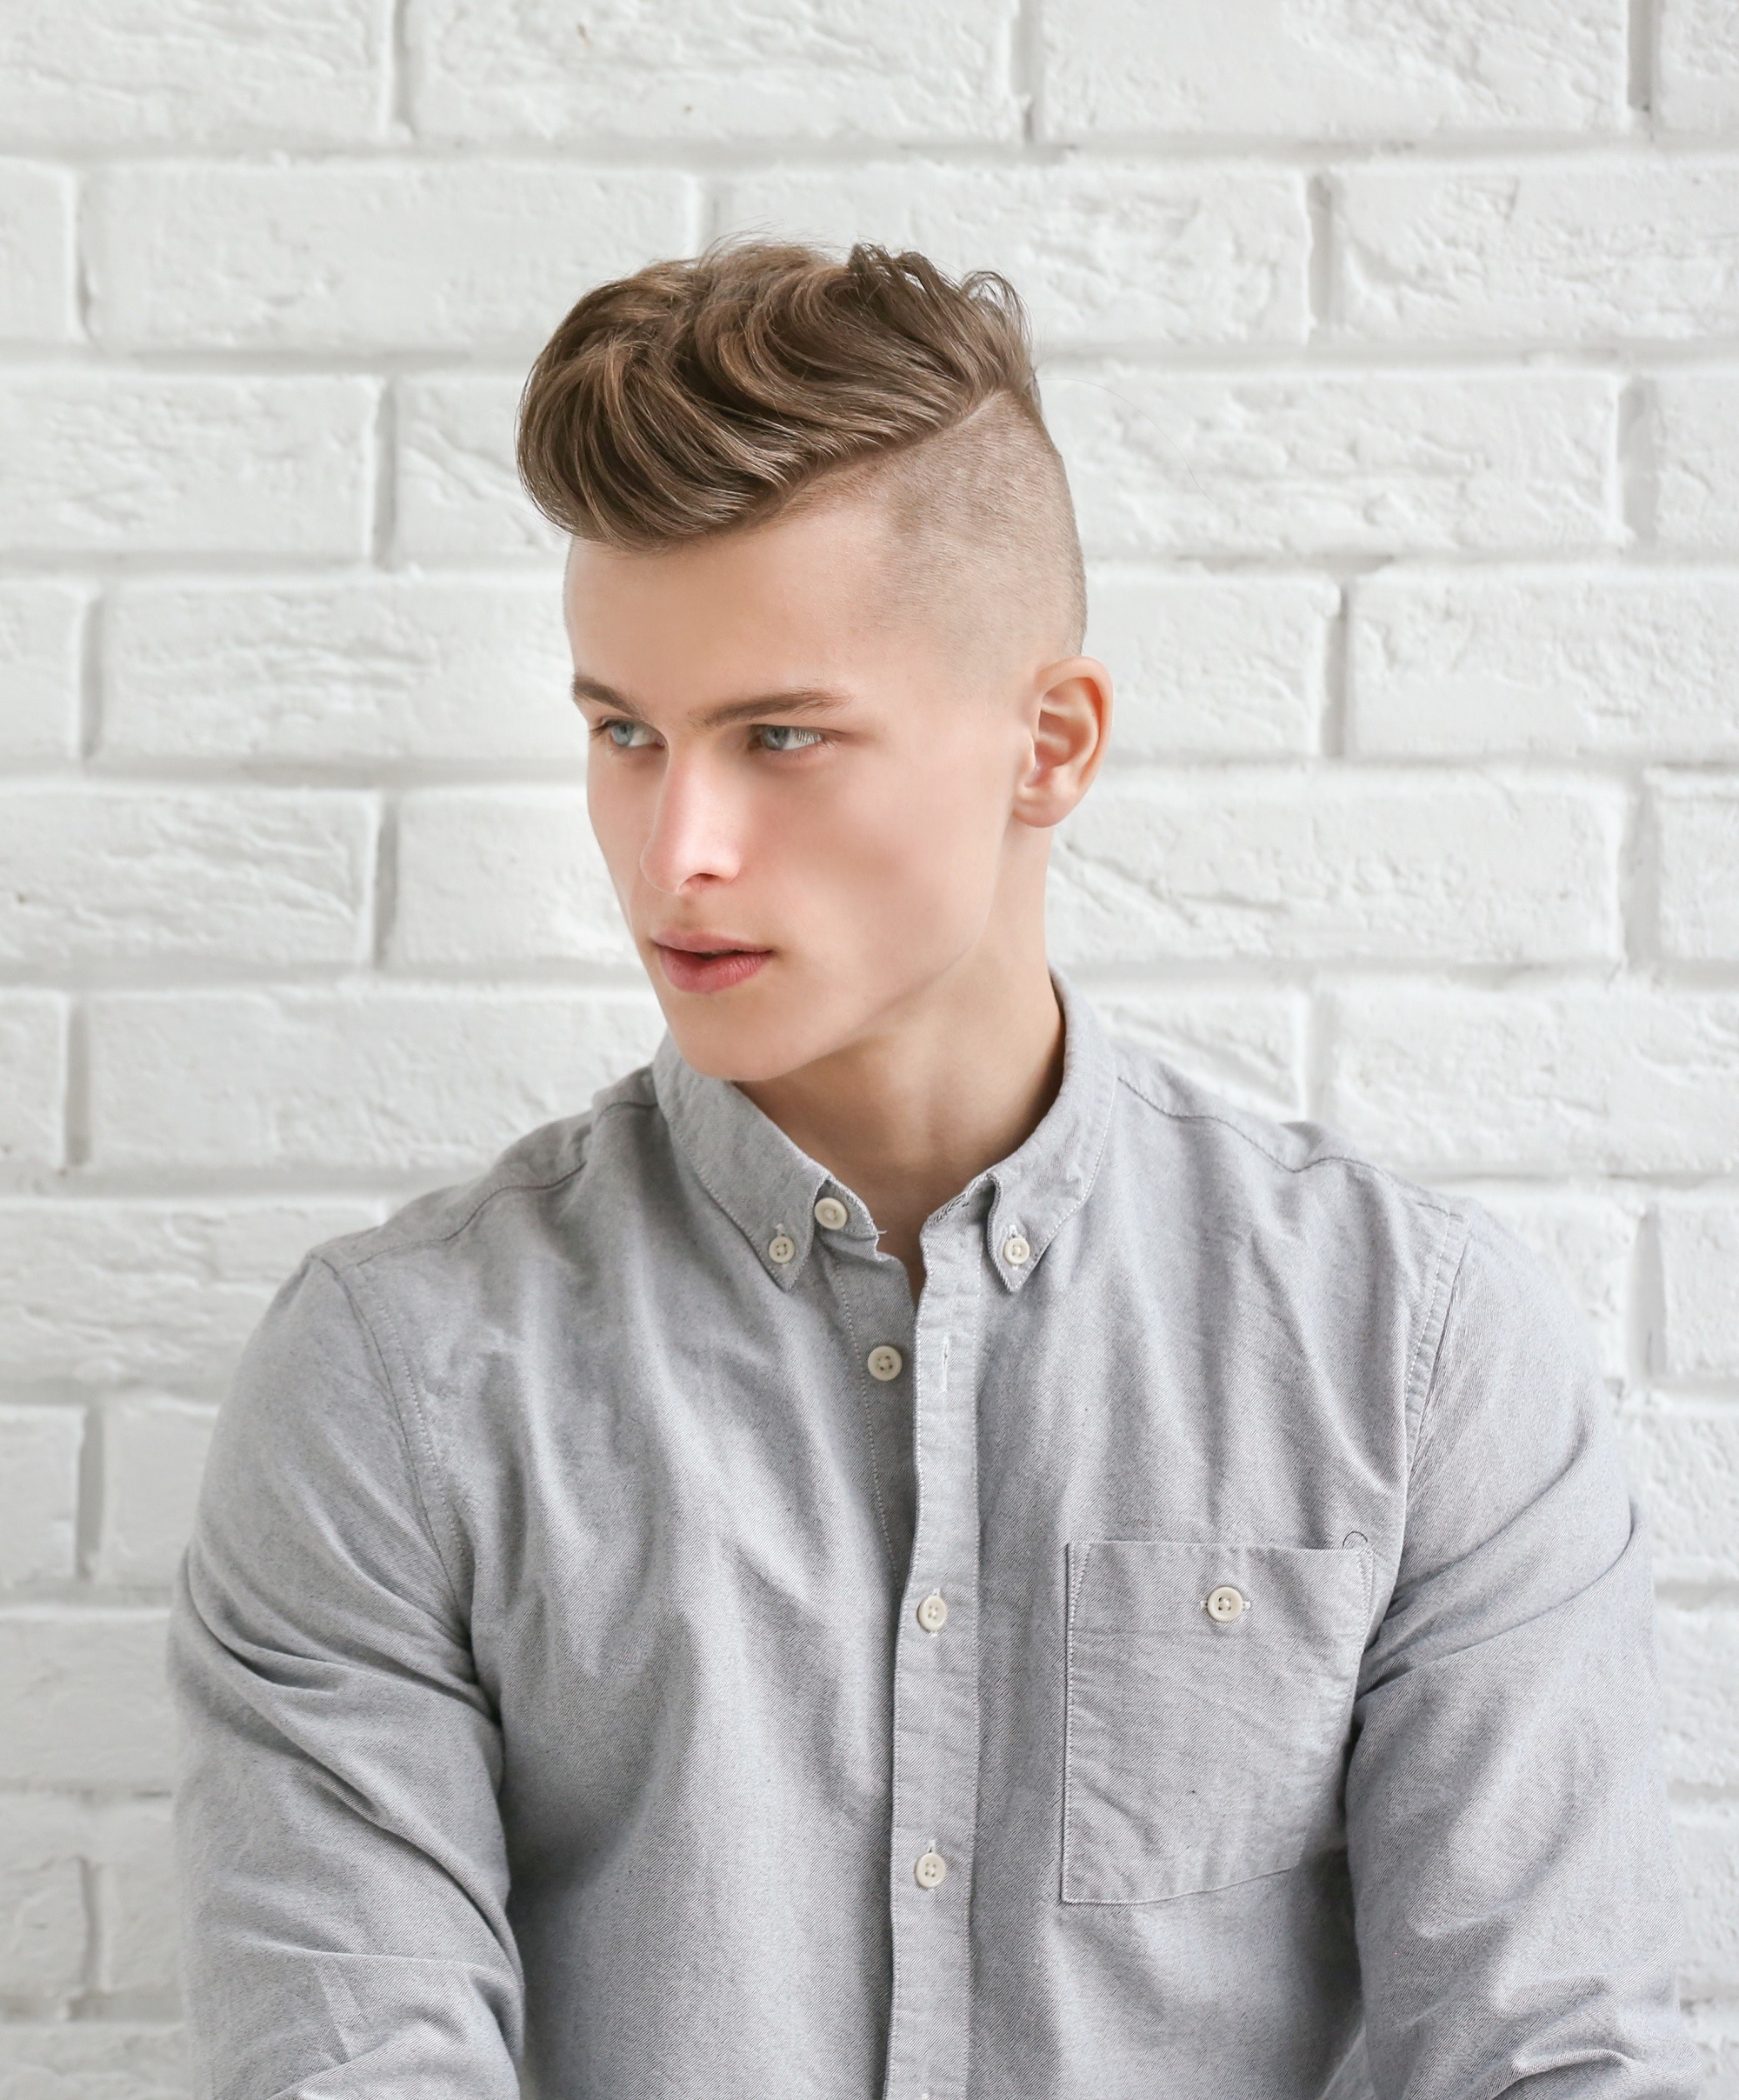 Healthy scalp: Closeup shot of a Caucasian man with shaved sides and brown hair in pompadour hairstyle